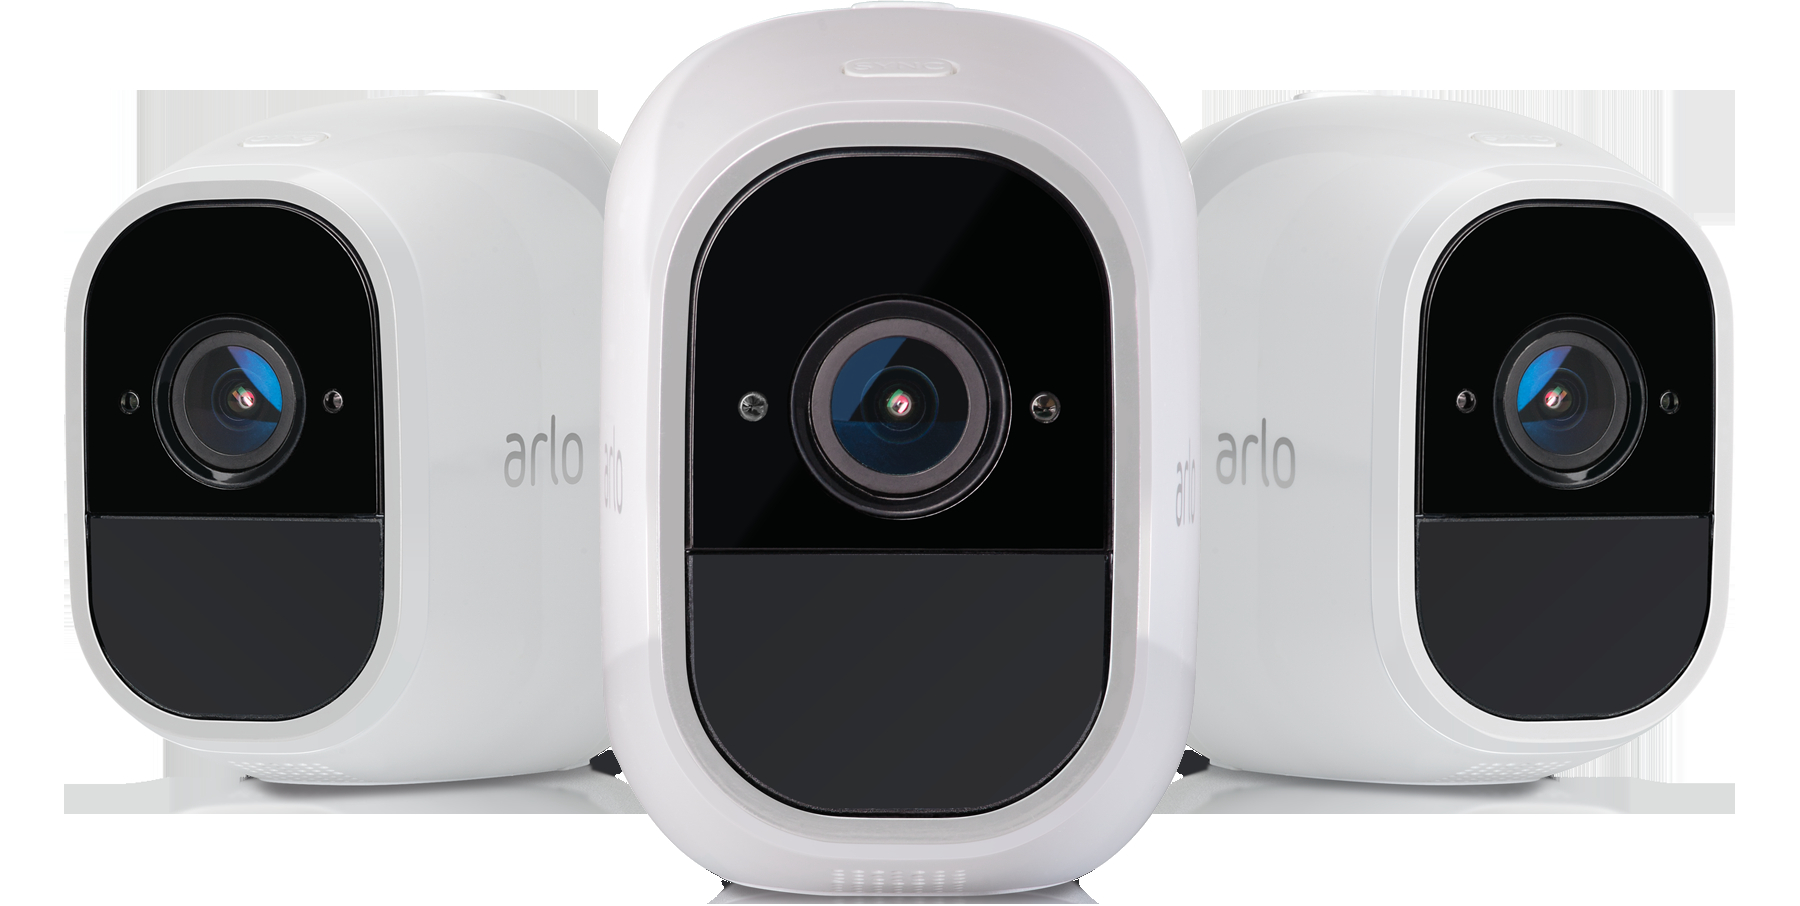 Best Home Security Camera System 2 With Fascinating Arlo Pro 2 1080p Smart Home Security Camera Arlo Netgear On Best Home Security Camera System 2 - Home Improvement